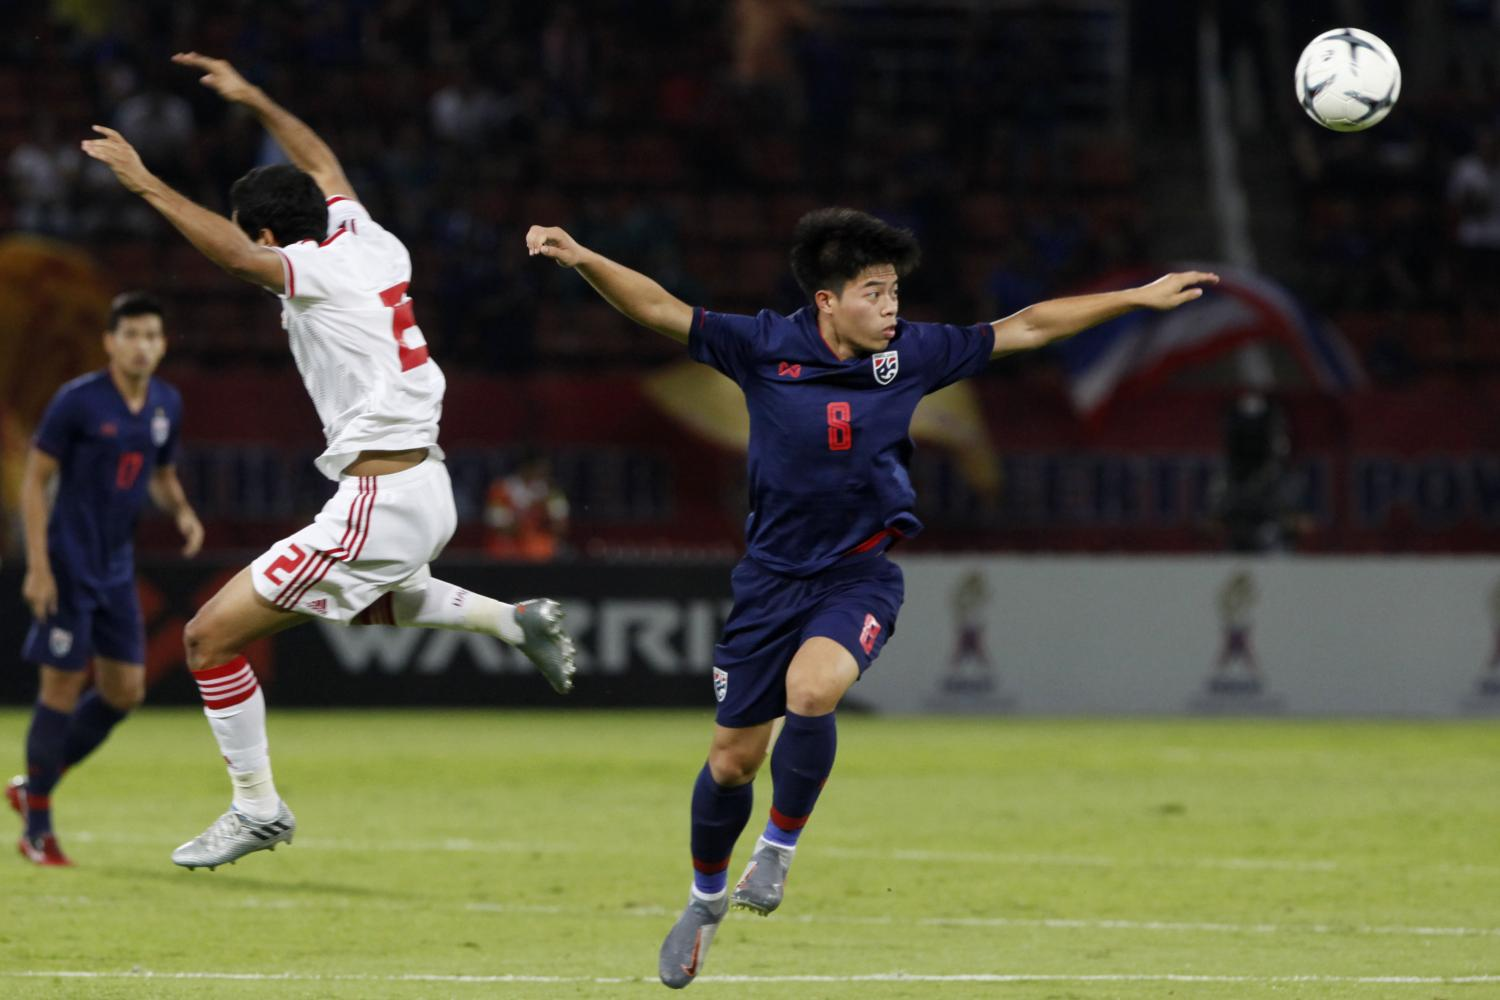 Thailand's Ekanit Panya, right, plays against the UAE at Thammasat Stadium on Tuesday.Wichan Charoenkiatpakul  Wichan Charoenkiatpakul